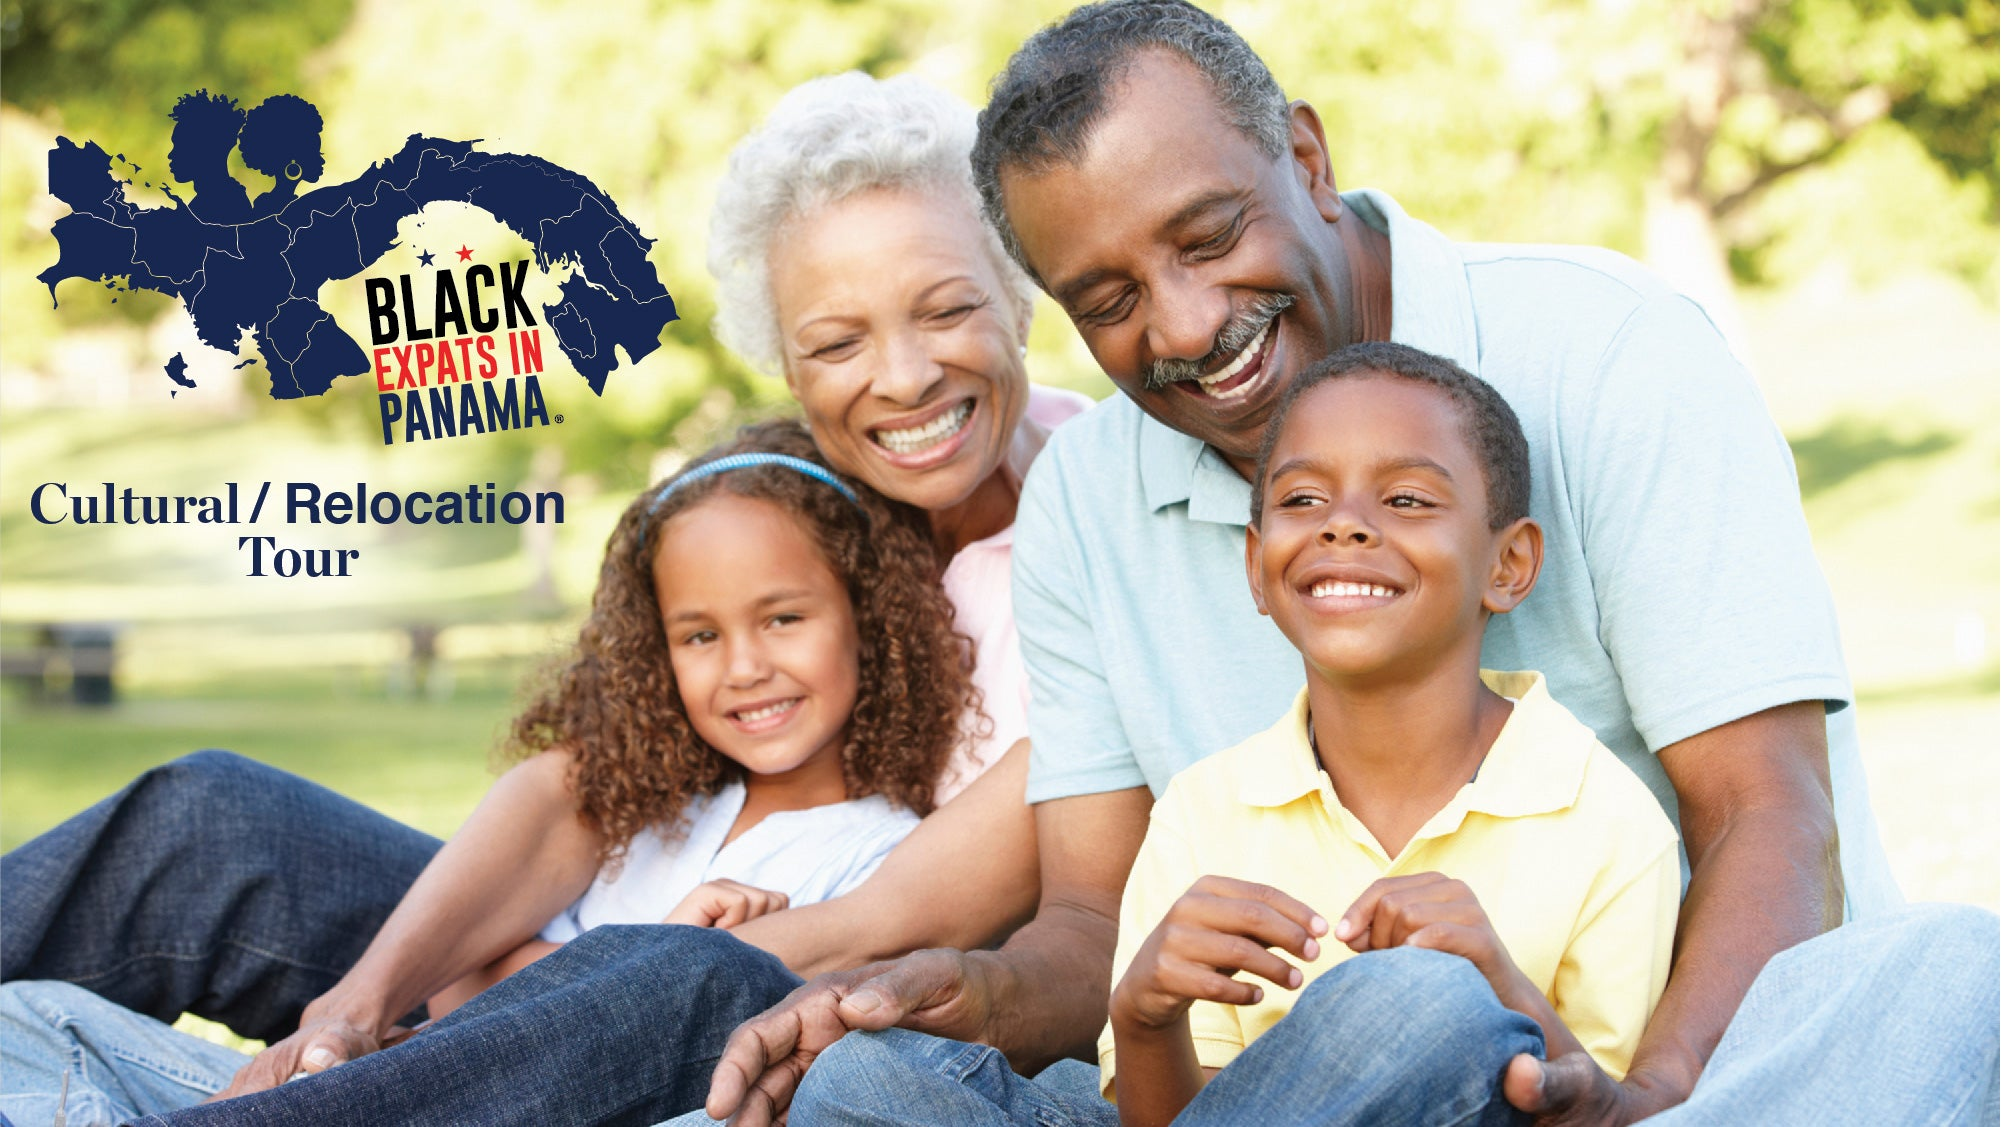 Black Expats in Panama Cultural & Relocation Tour